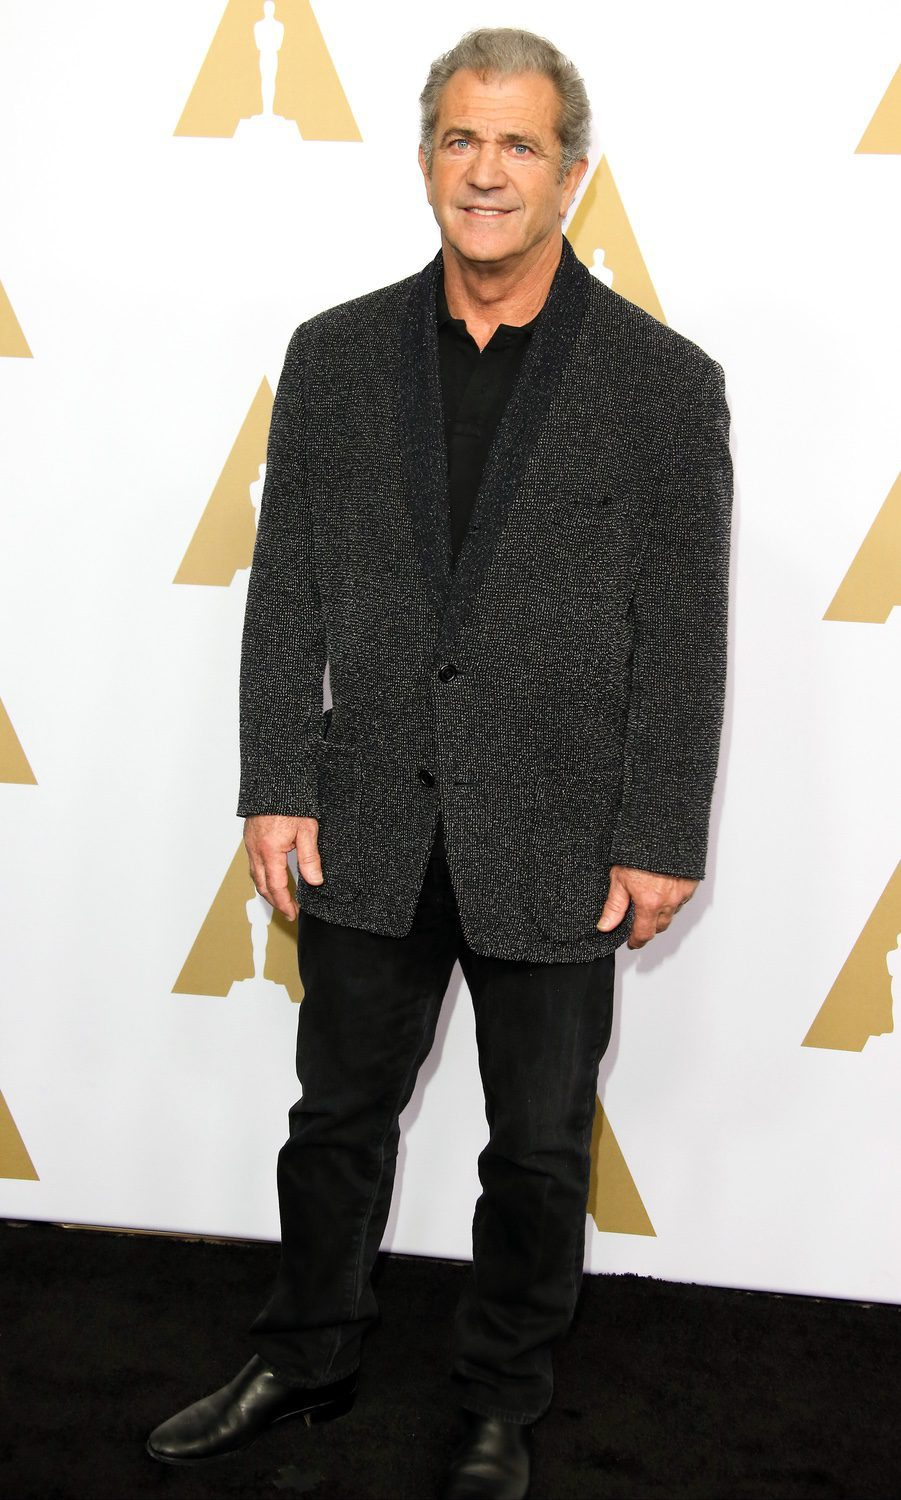 Mel Gibson at the 2017 Annual Academy Awards Nominee Luncheon